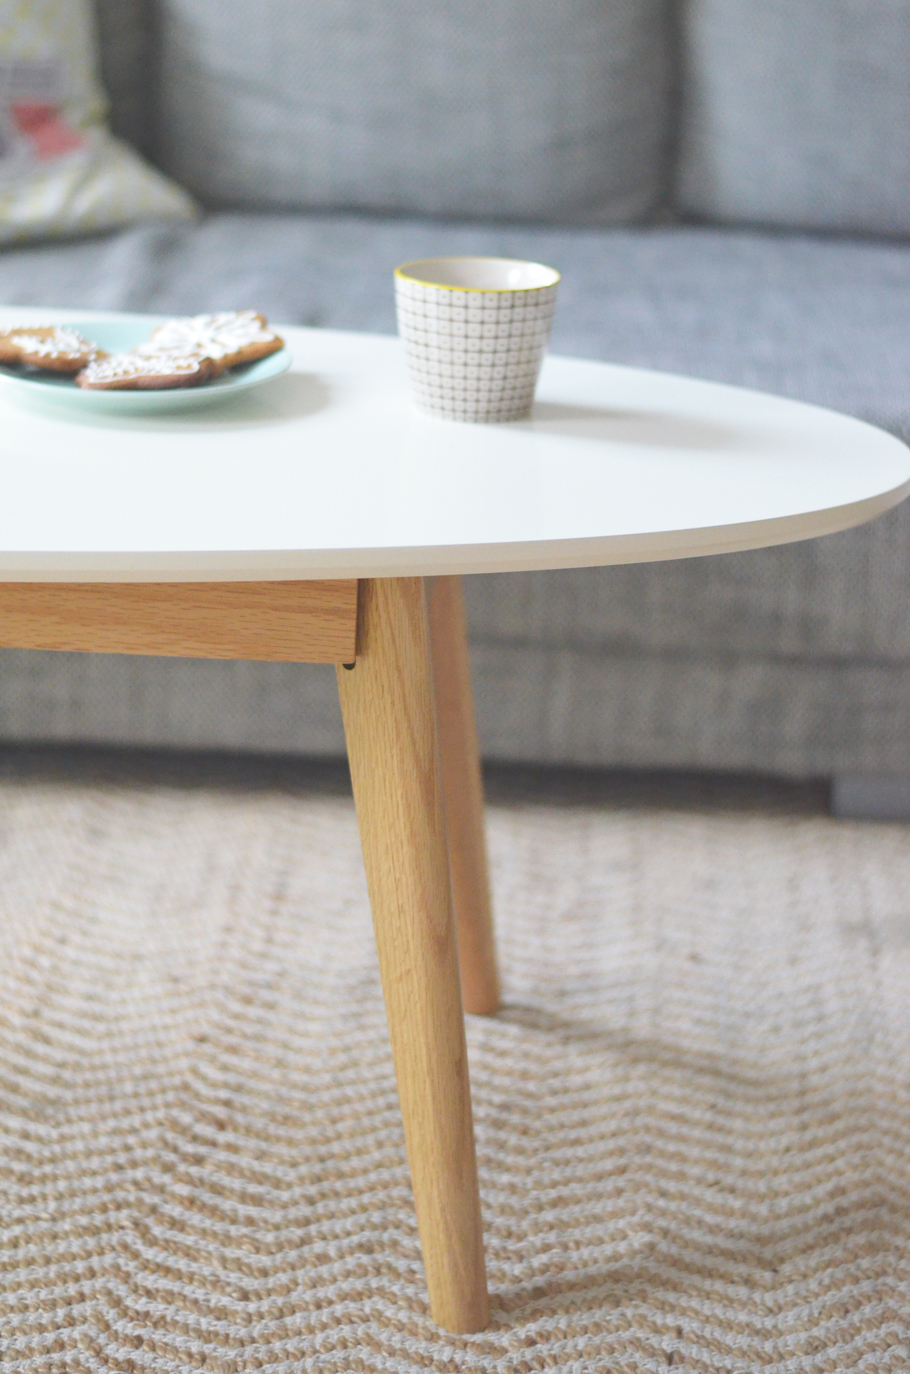 Faire une table basse scandinave for Fabriquer une table basse scandinave